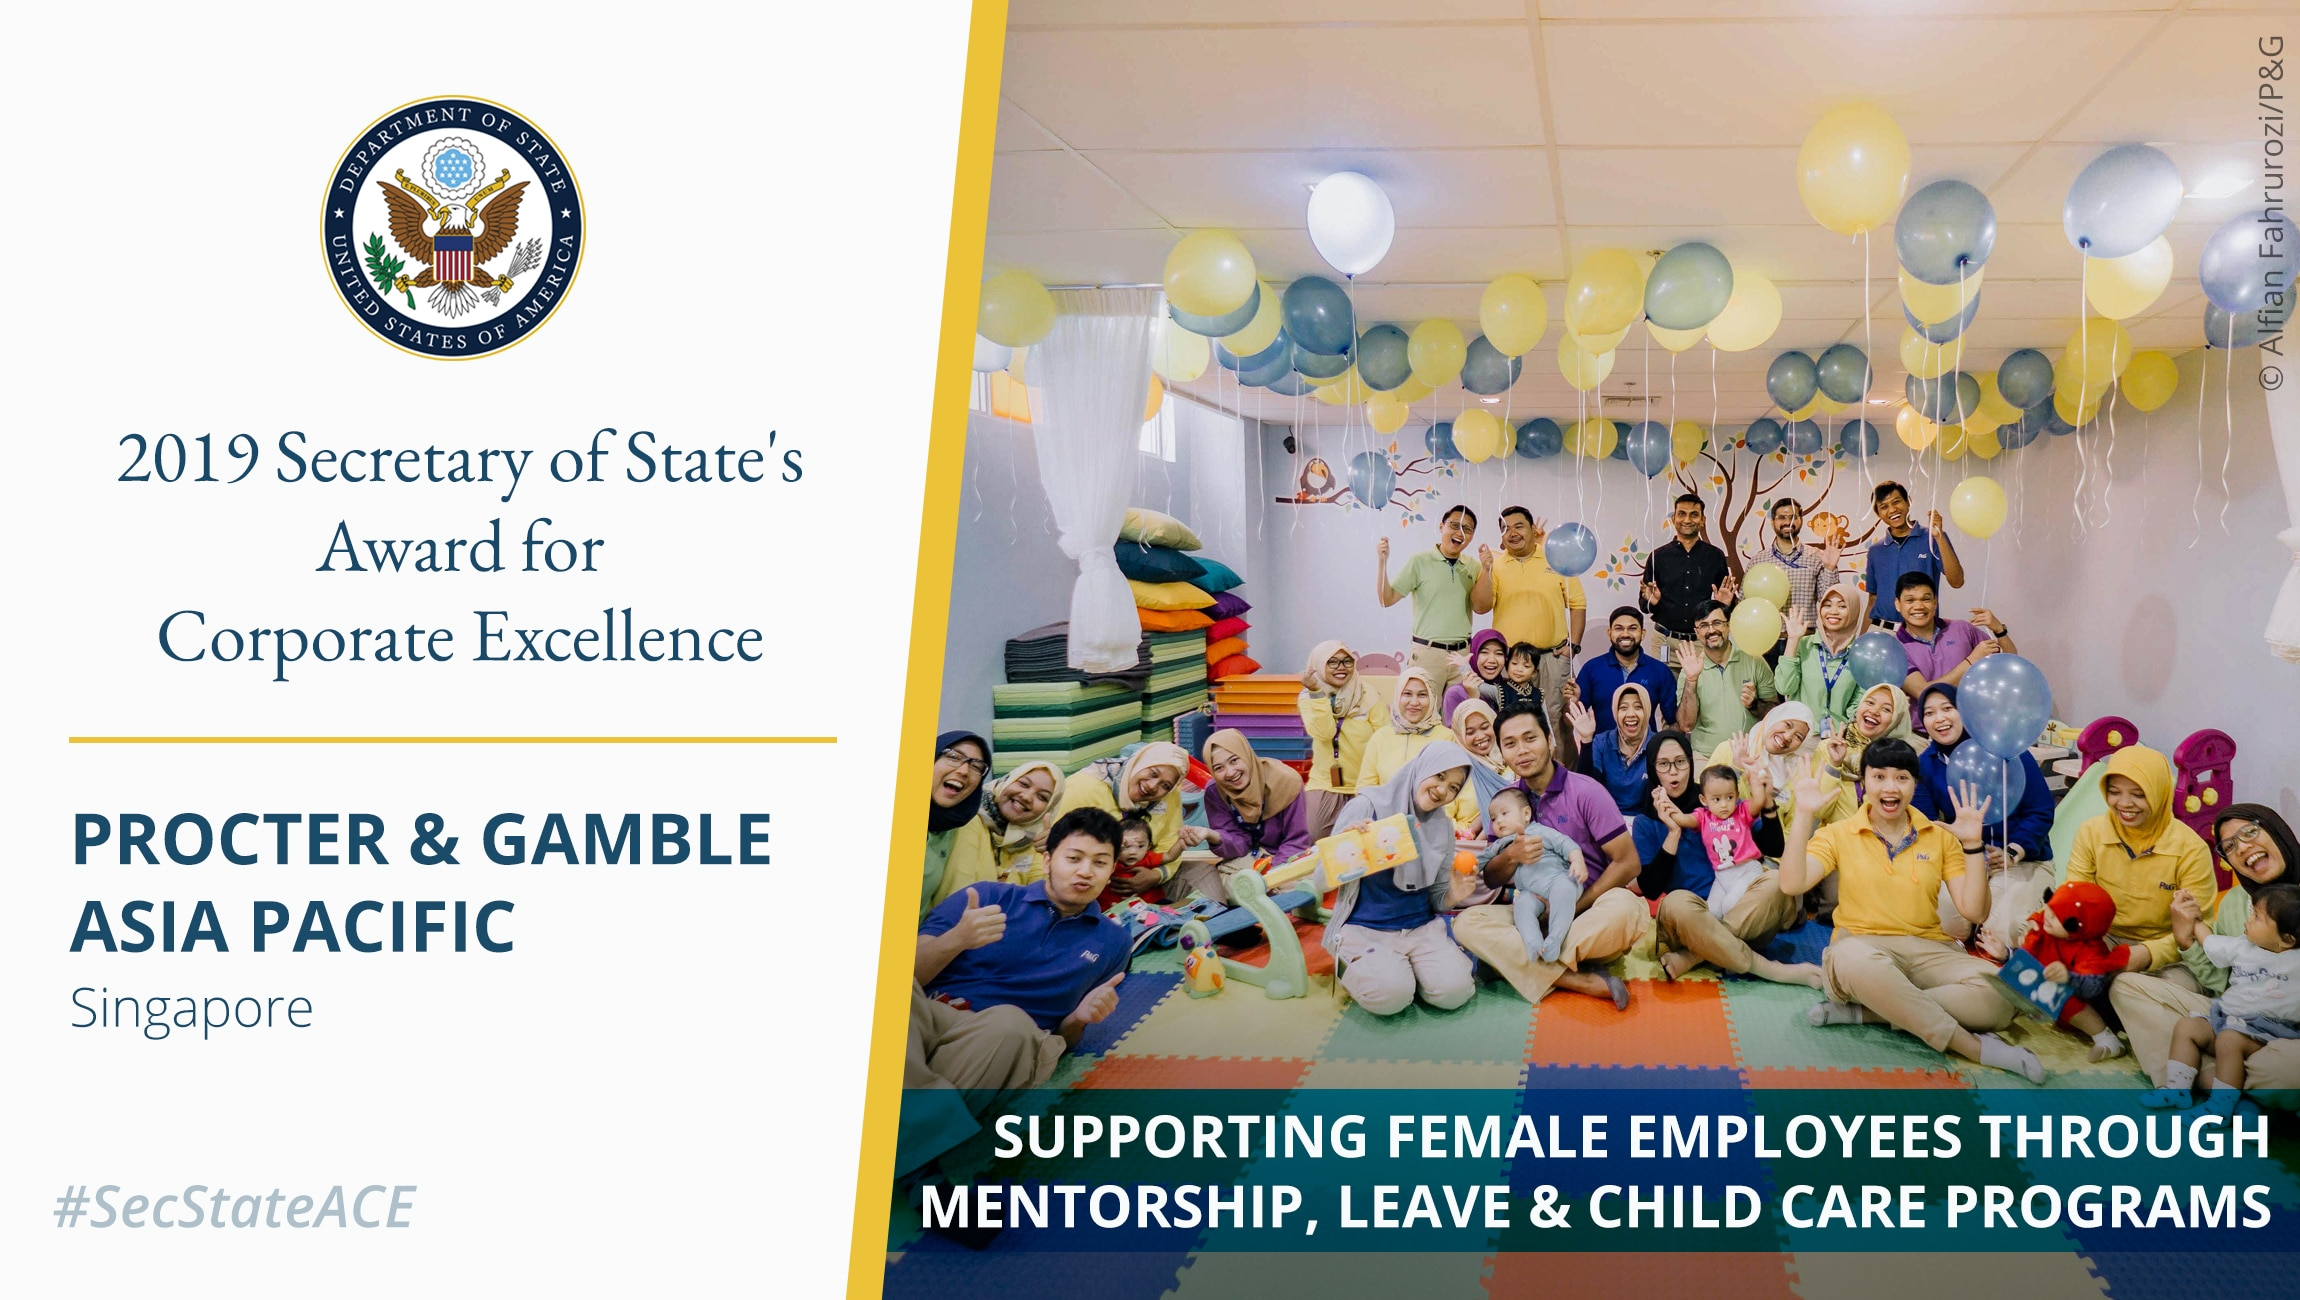 Photo of people posing in balloon-filled room next to text about corporate excellence award (State Dept./Photo © Alfian Fahrurozi/P&G)